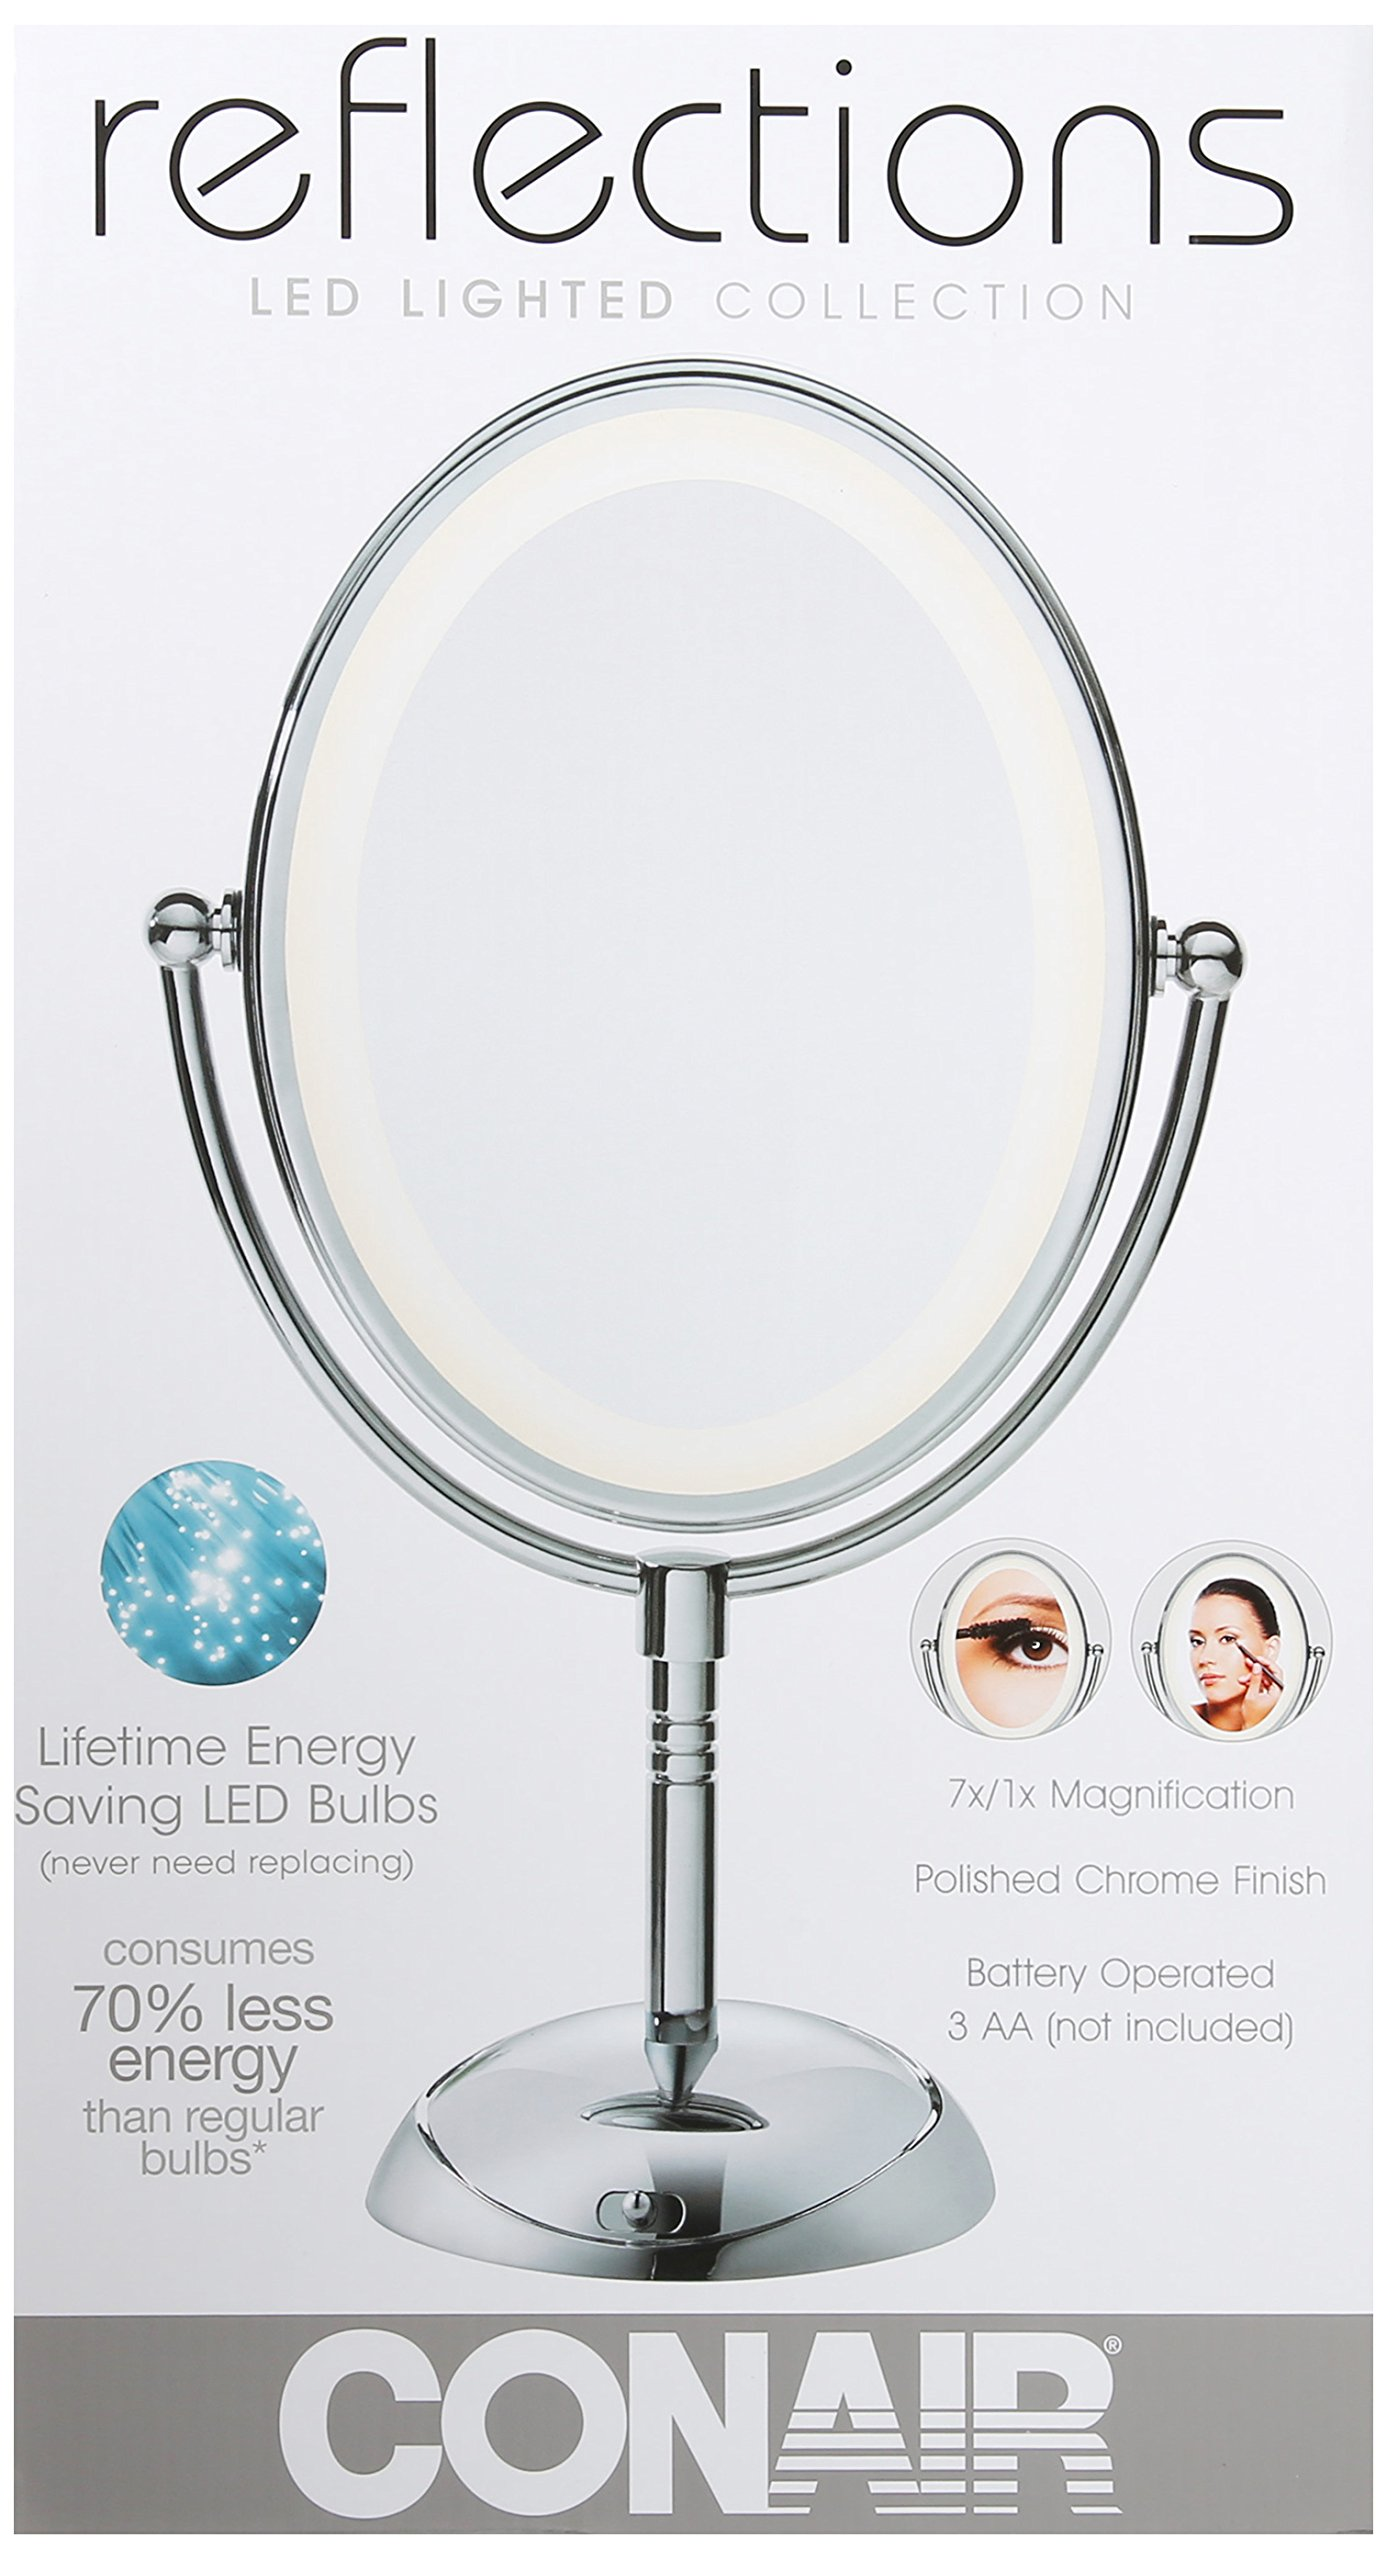 Conair Oval Shaped LED Double-Sided Lighted Makeup Mirror; 1x/7x magnification; Polished Chrome Finish by Conair (Image #6)